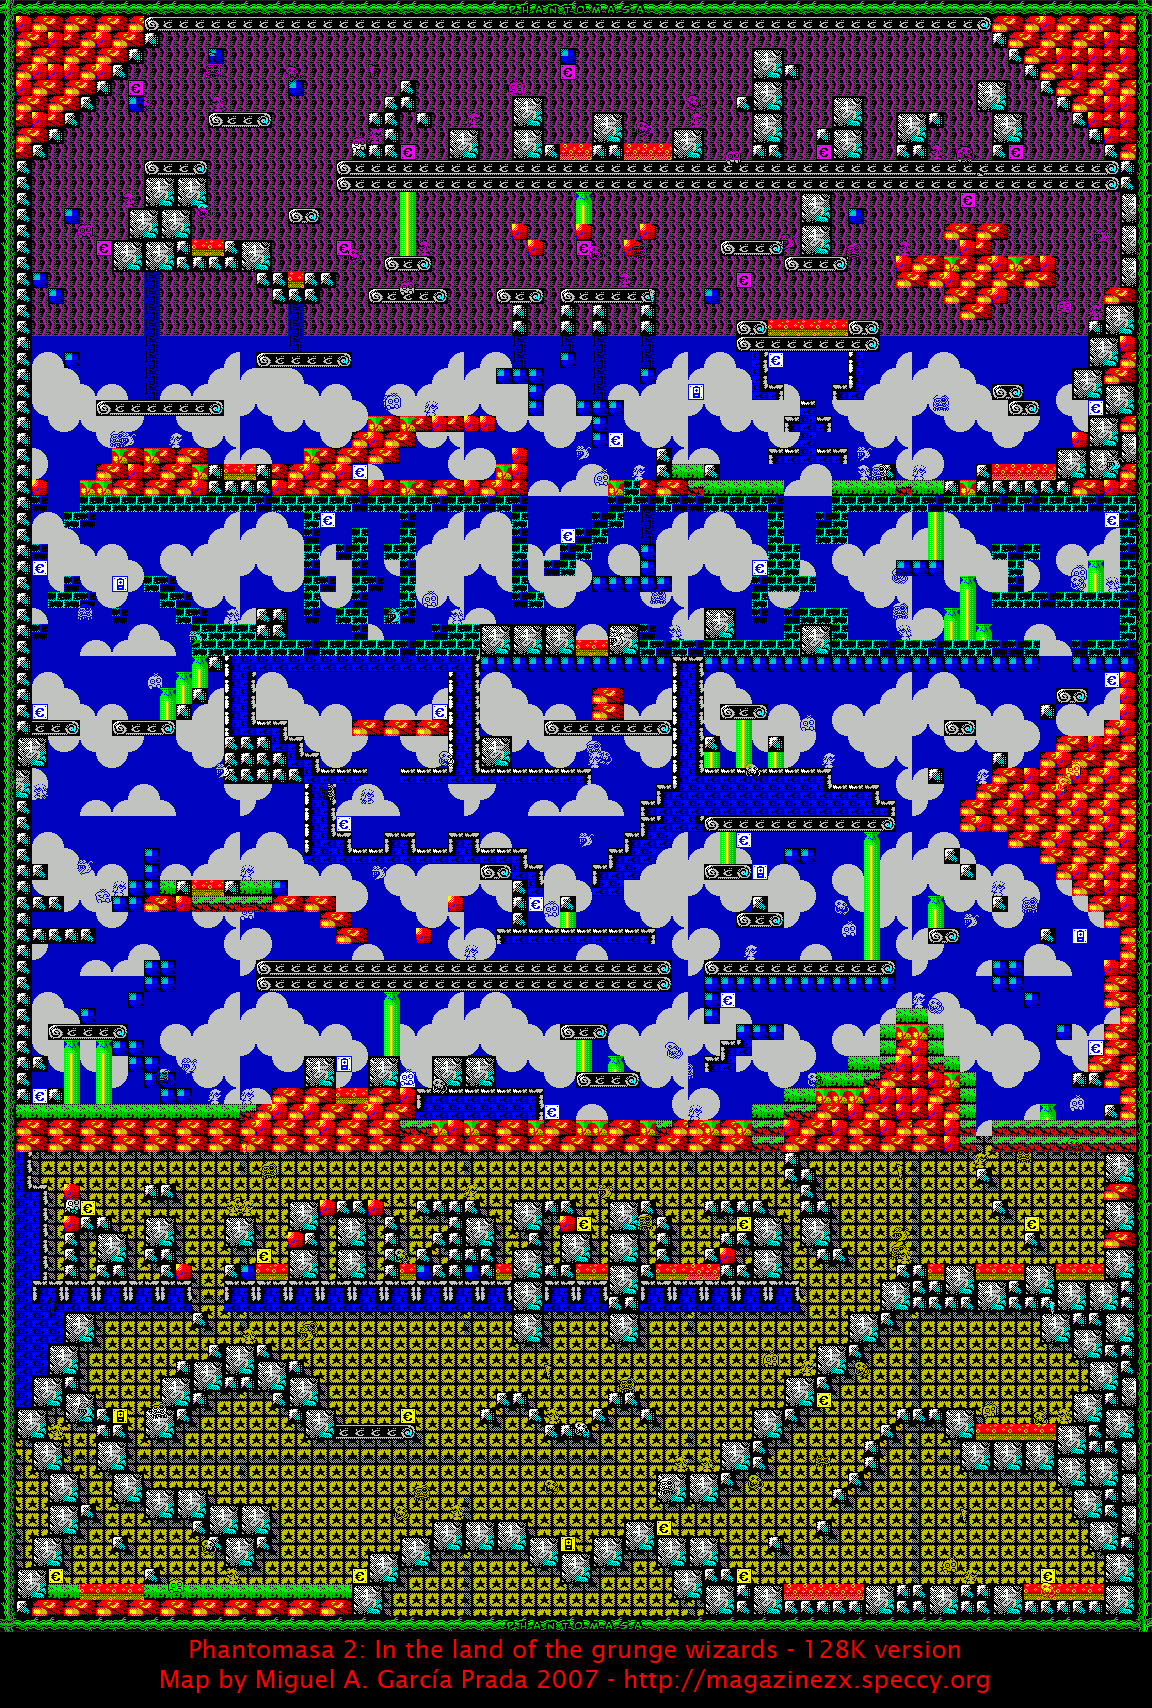 Phantomasa 2 (128K) - The Map